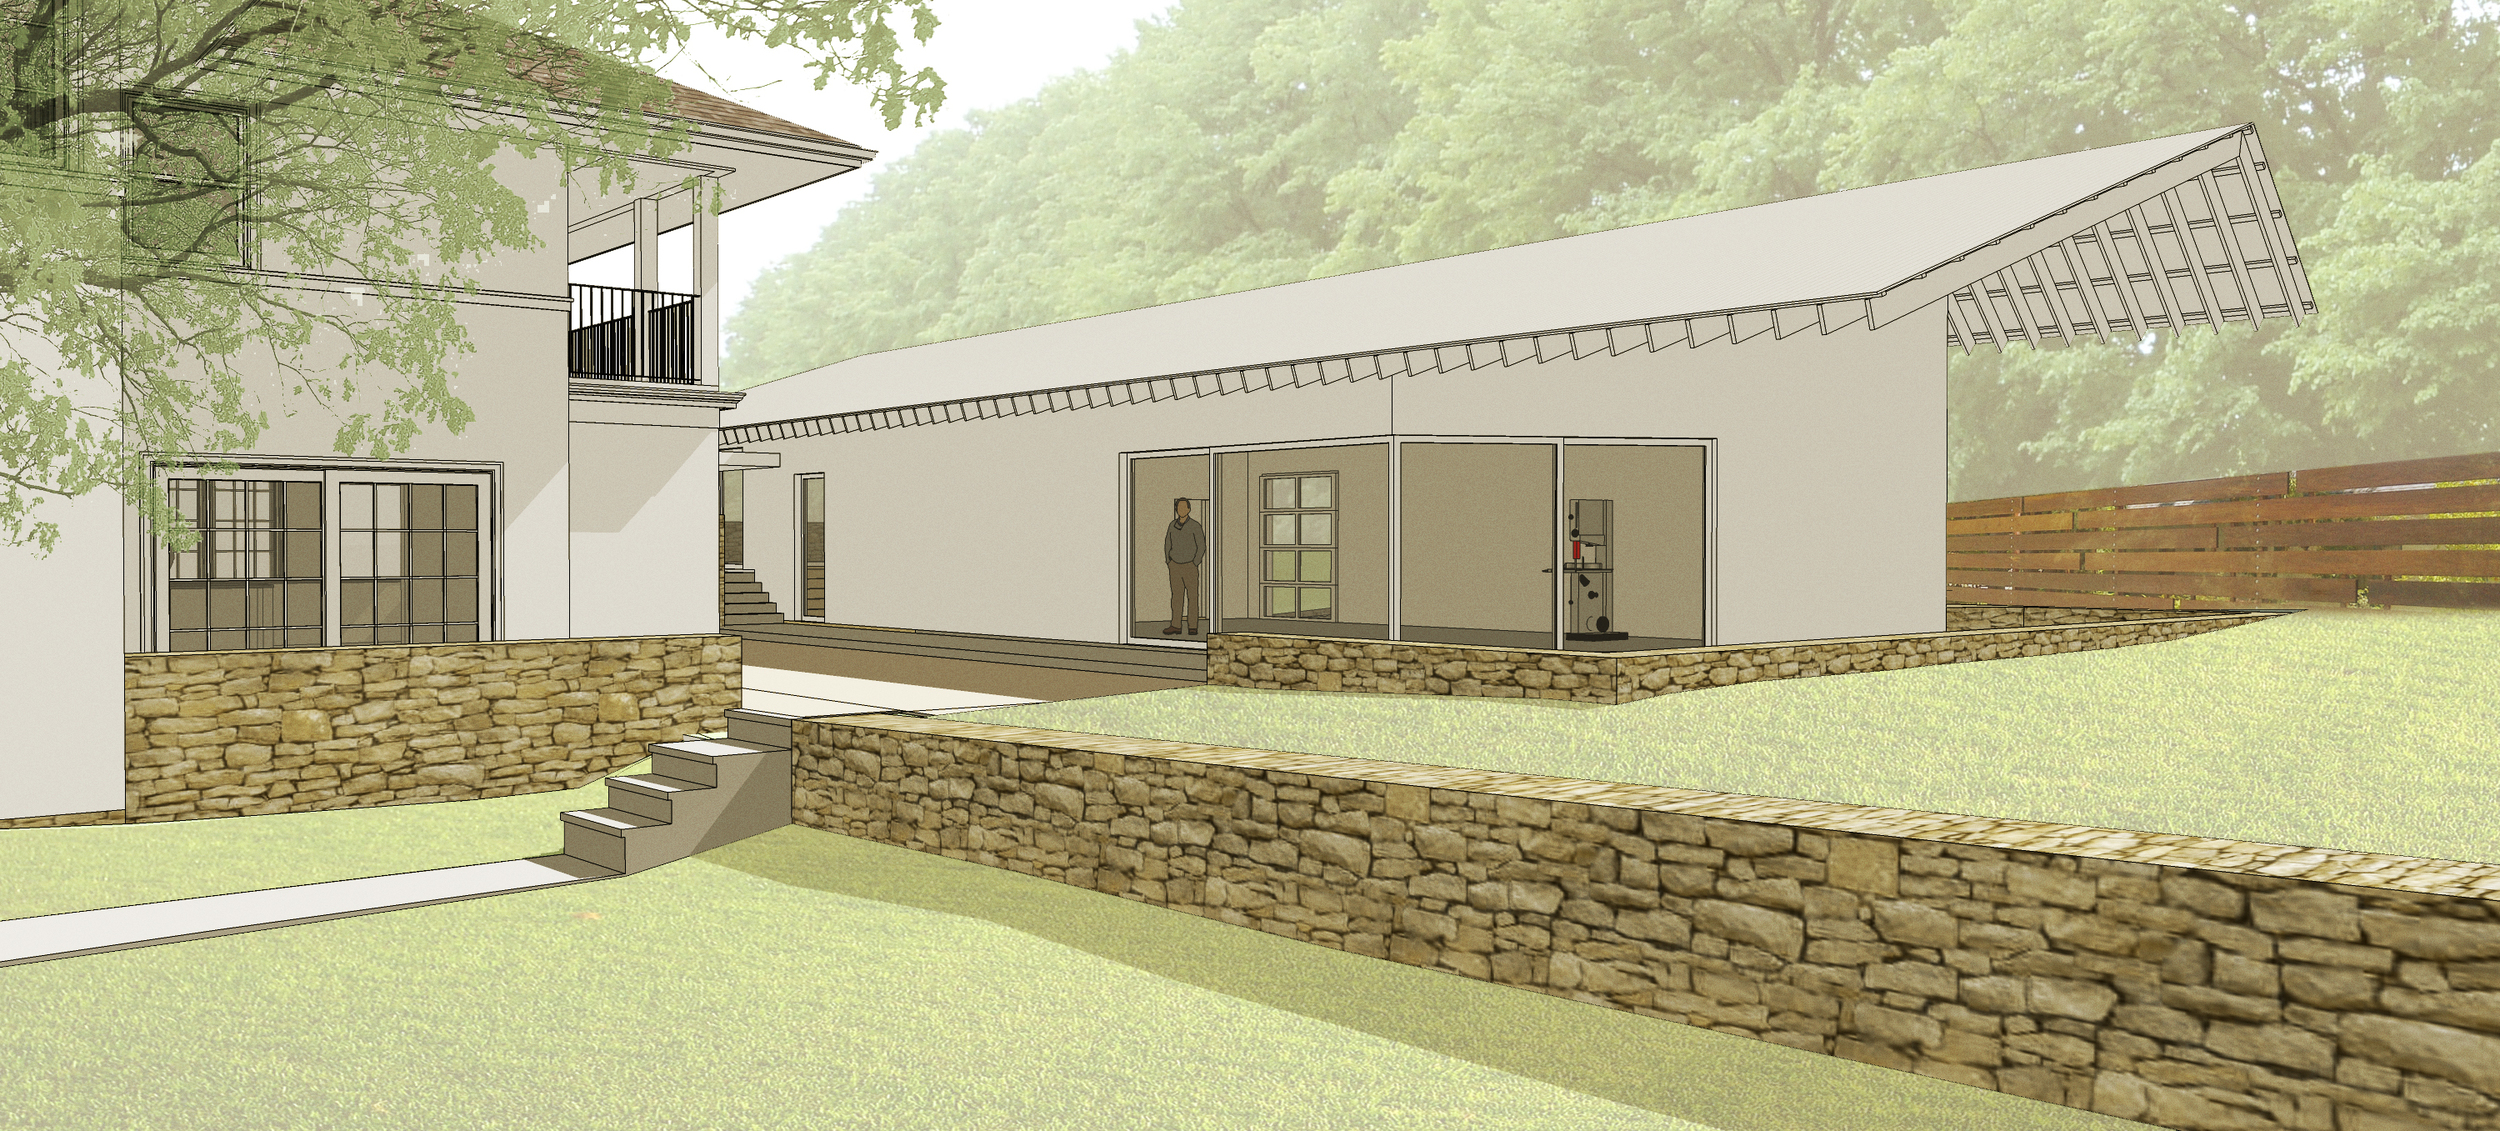 Proposed workshop/studio next to the existing house.